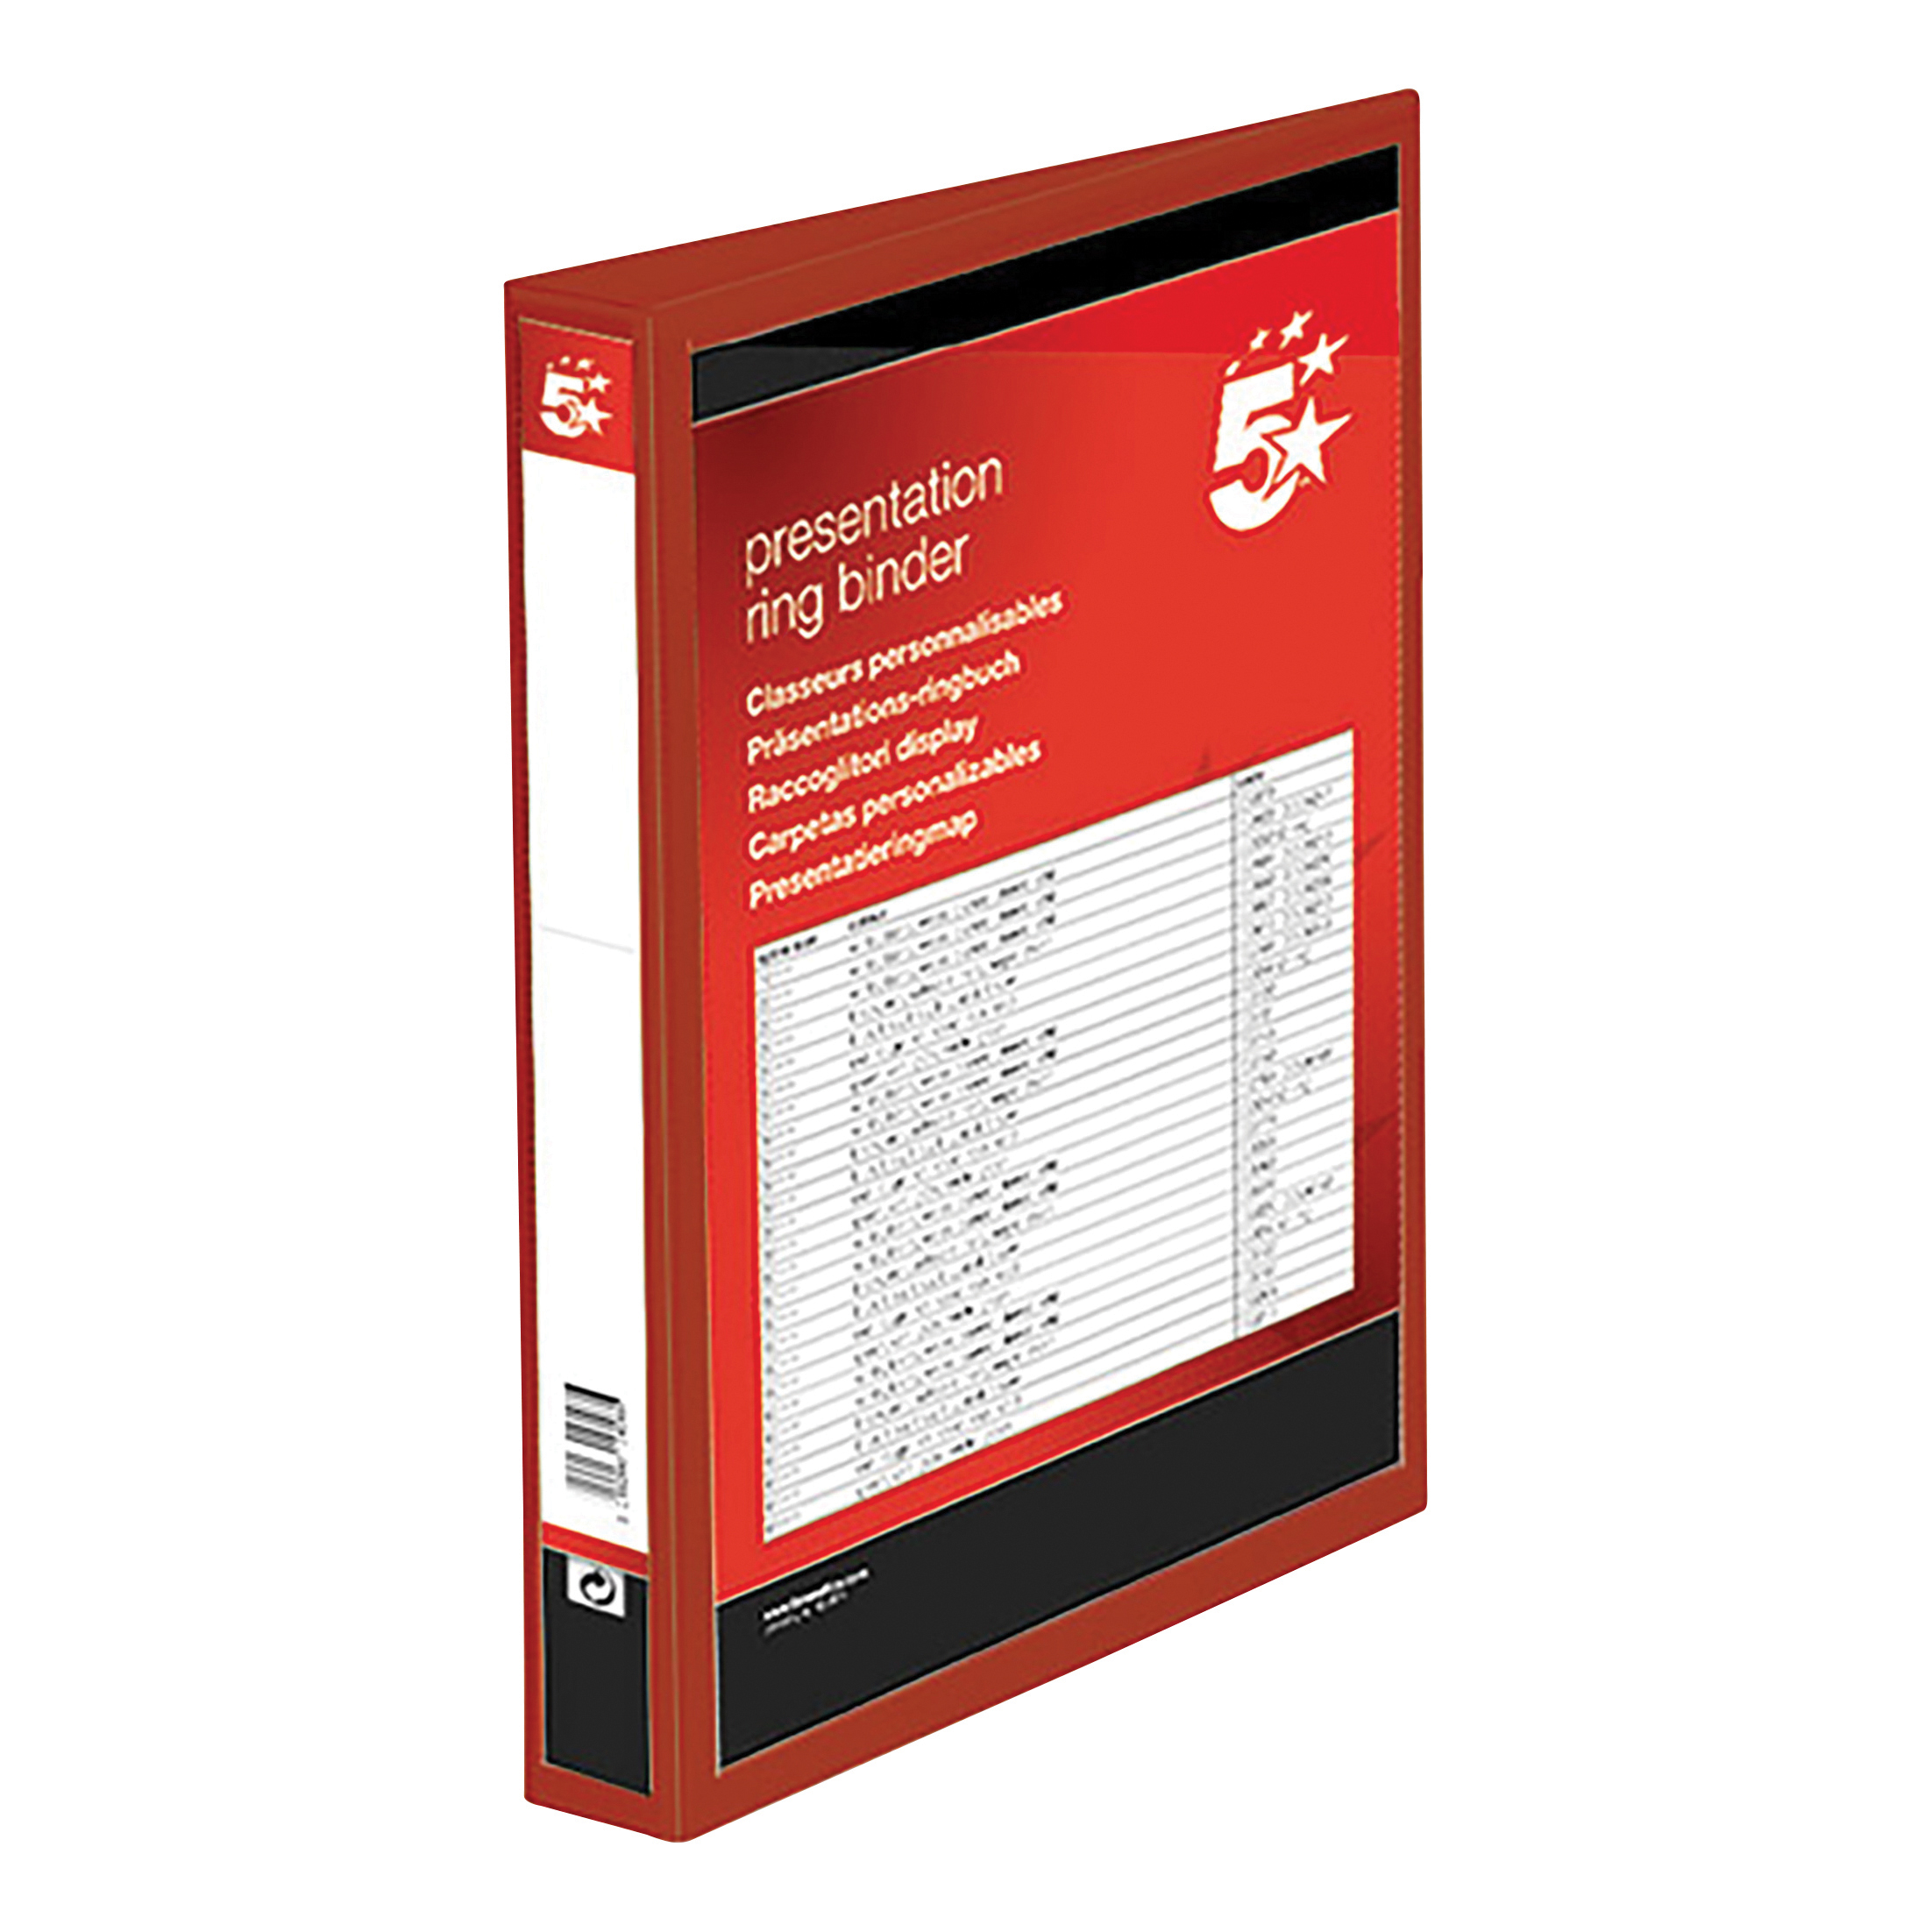 5 Star Office Presentation Ring Binder PVC 4 D-Ring 25mm Size A4 Red [Pack 10]